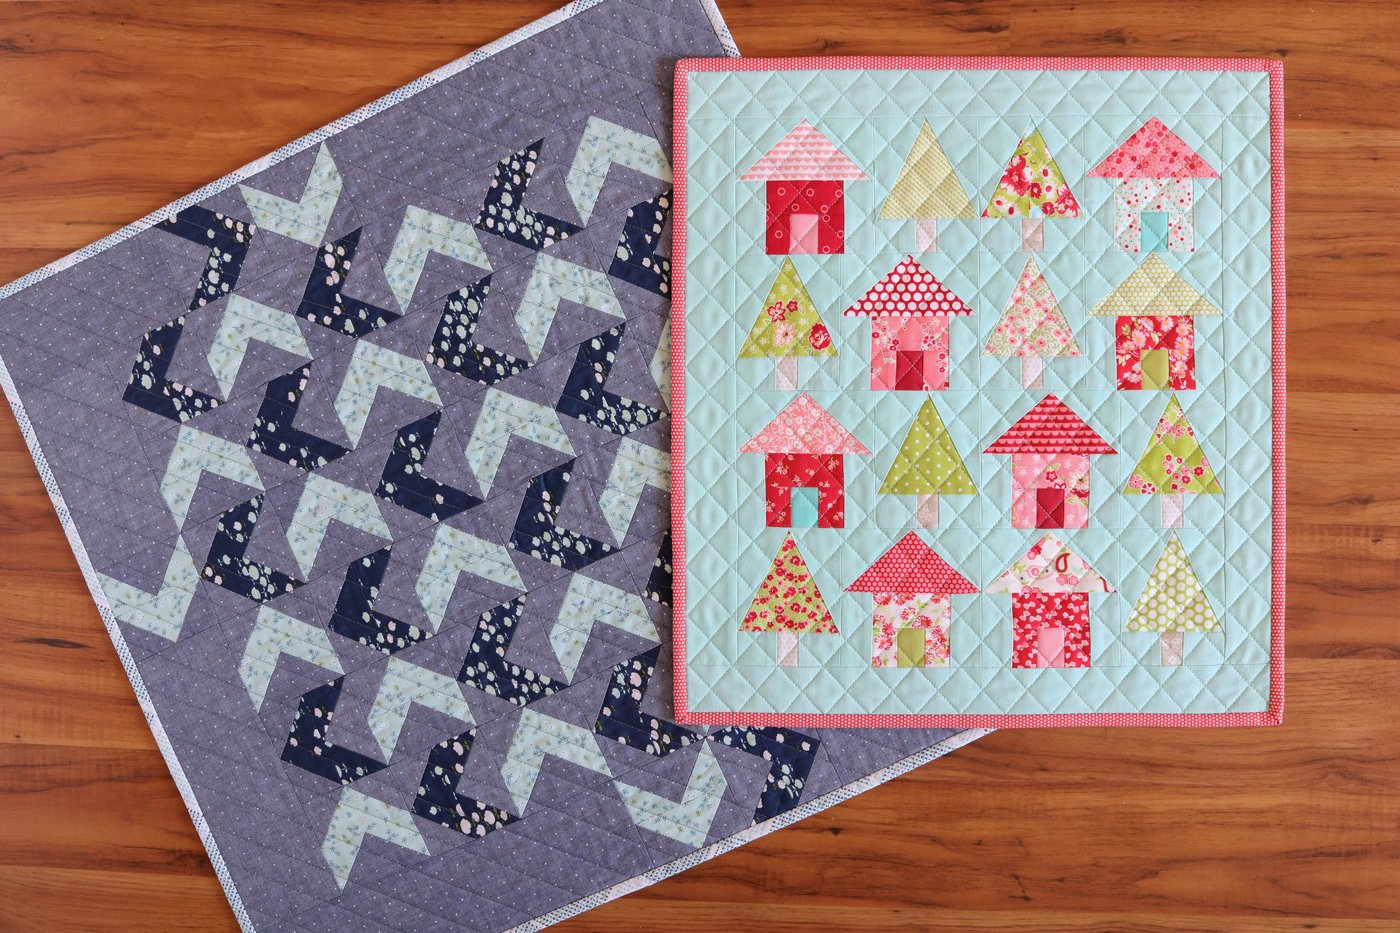 weekend-quilting-mini-quilts-2R2